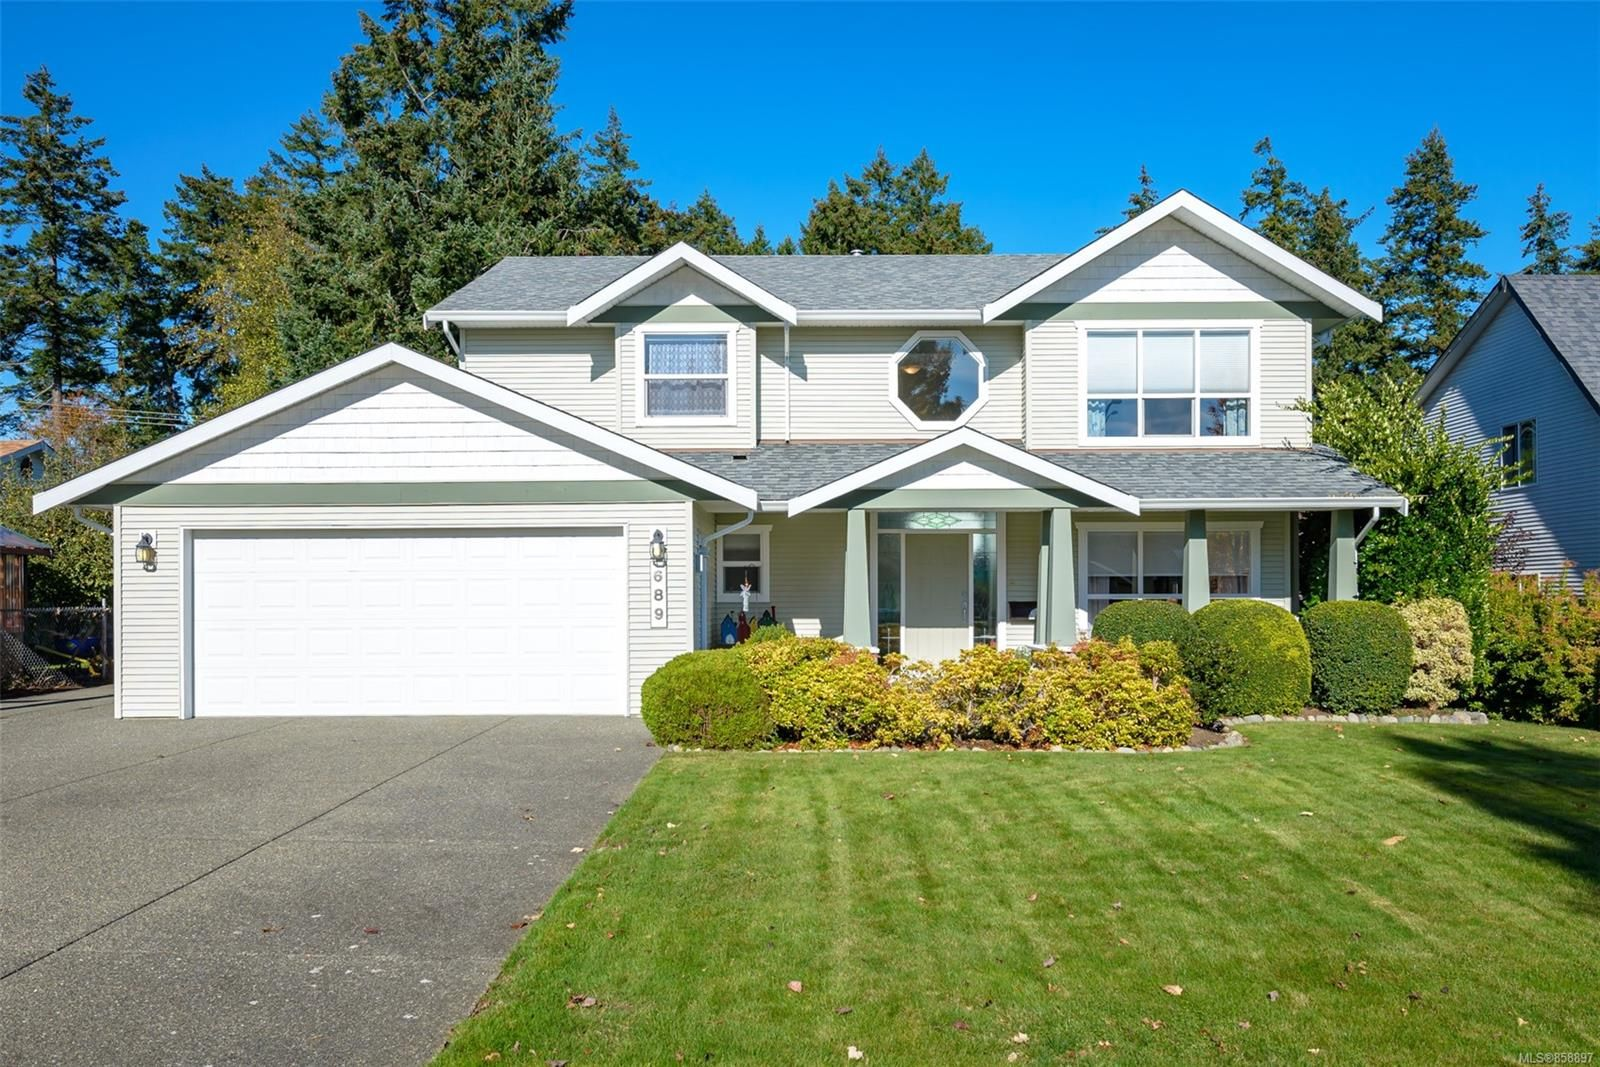 Main Photo: 689 moralee Dr in : CV Comox (Town of) House for sale (Comox Valley)  : MLS®# 858897